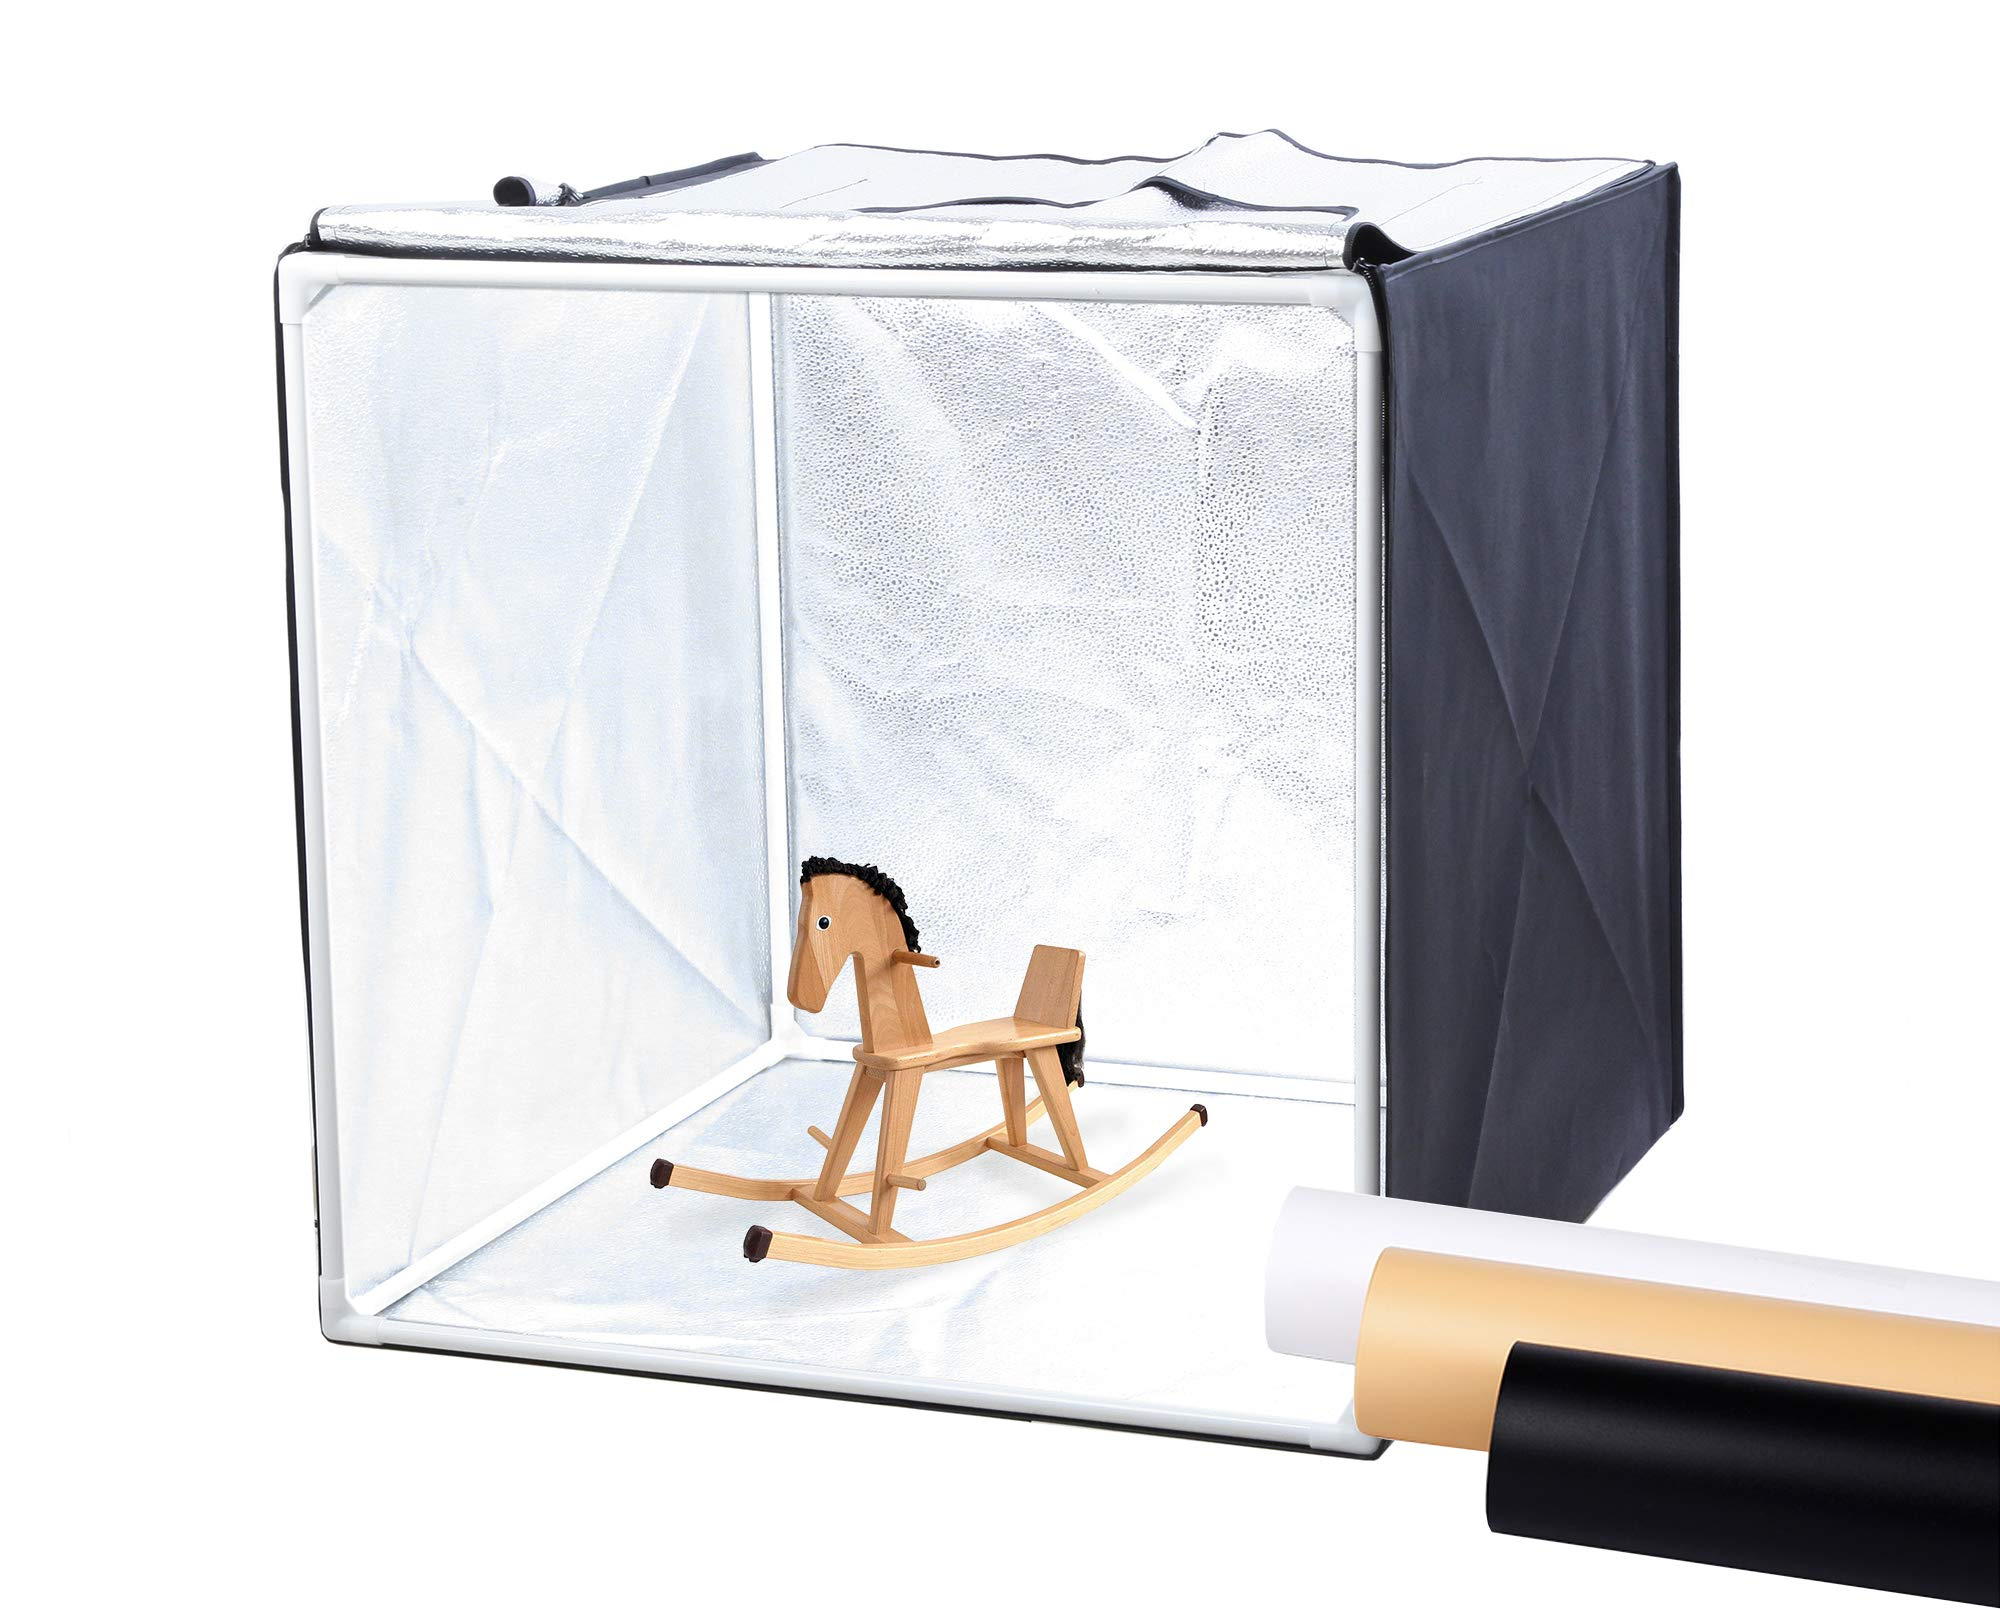 Finnhomy Professional Portable Photo Studio Photo Light Studio Photo Tent Light Box Table Top Photography Shooting Tent Box Lighting Kit, 24'' x 24'' Cube by Finnhomy (Image #1)